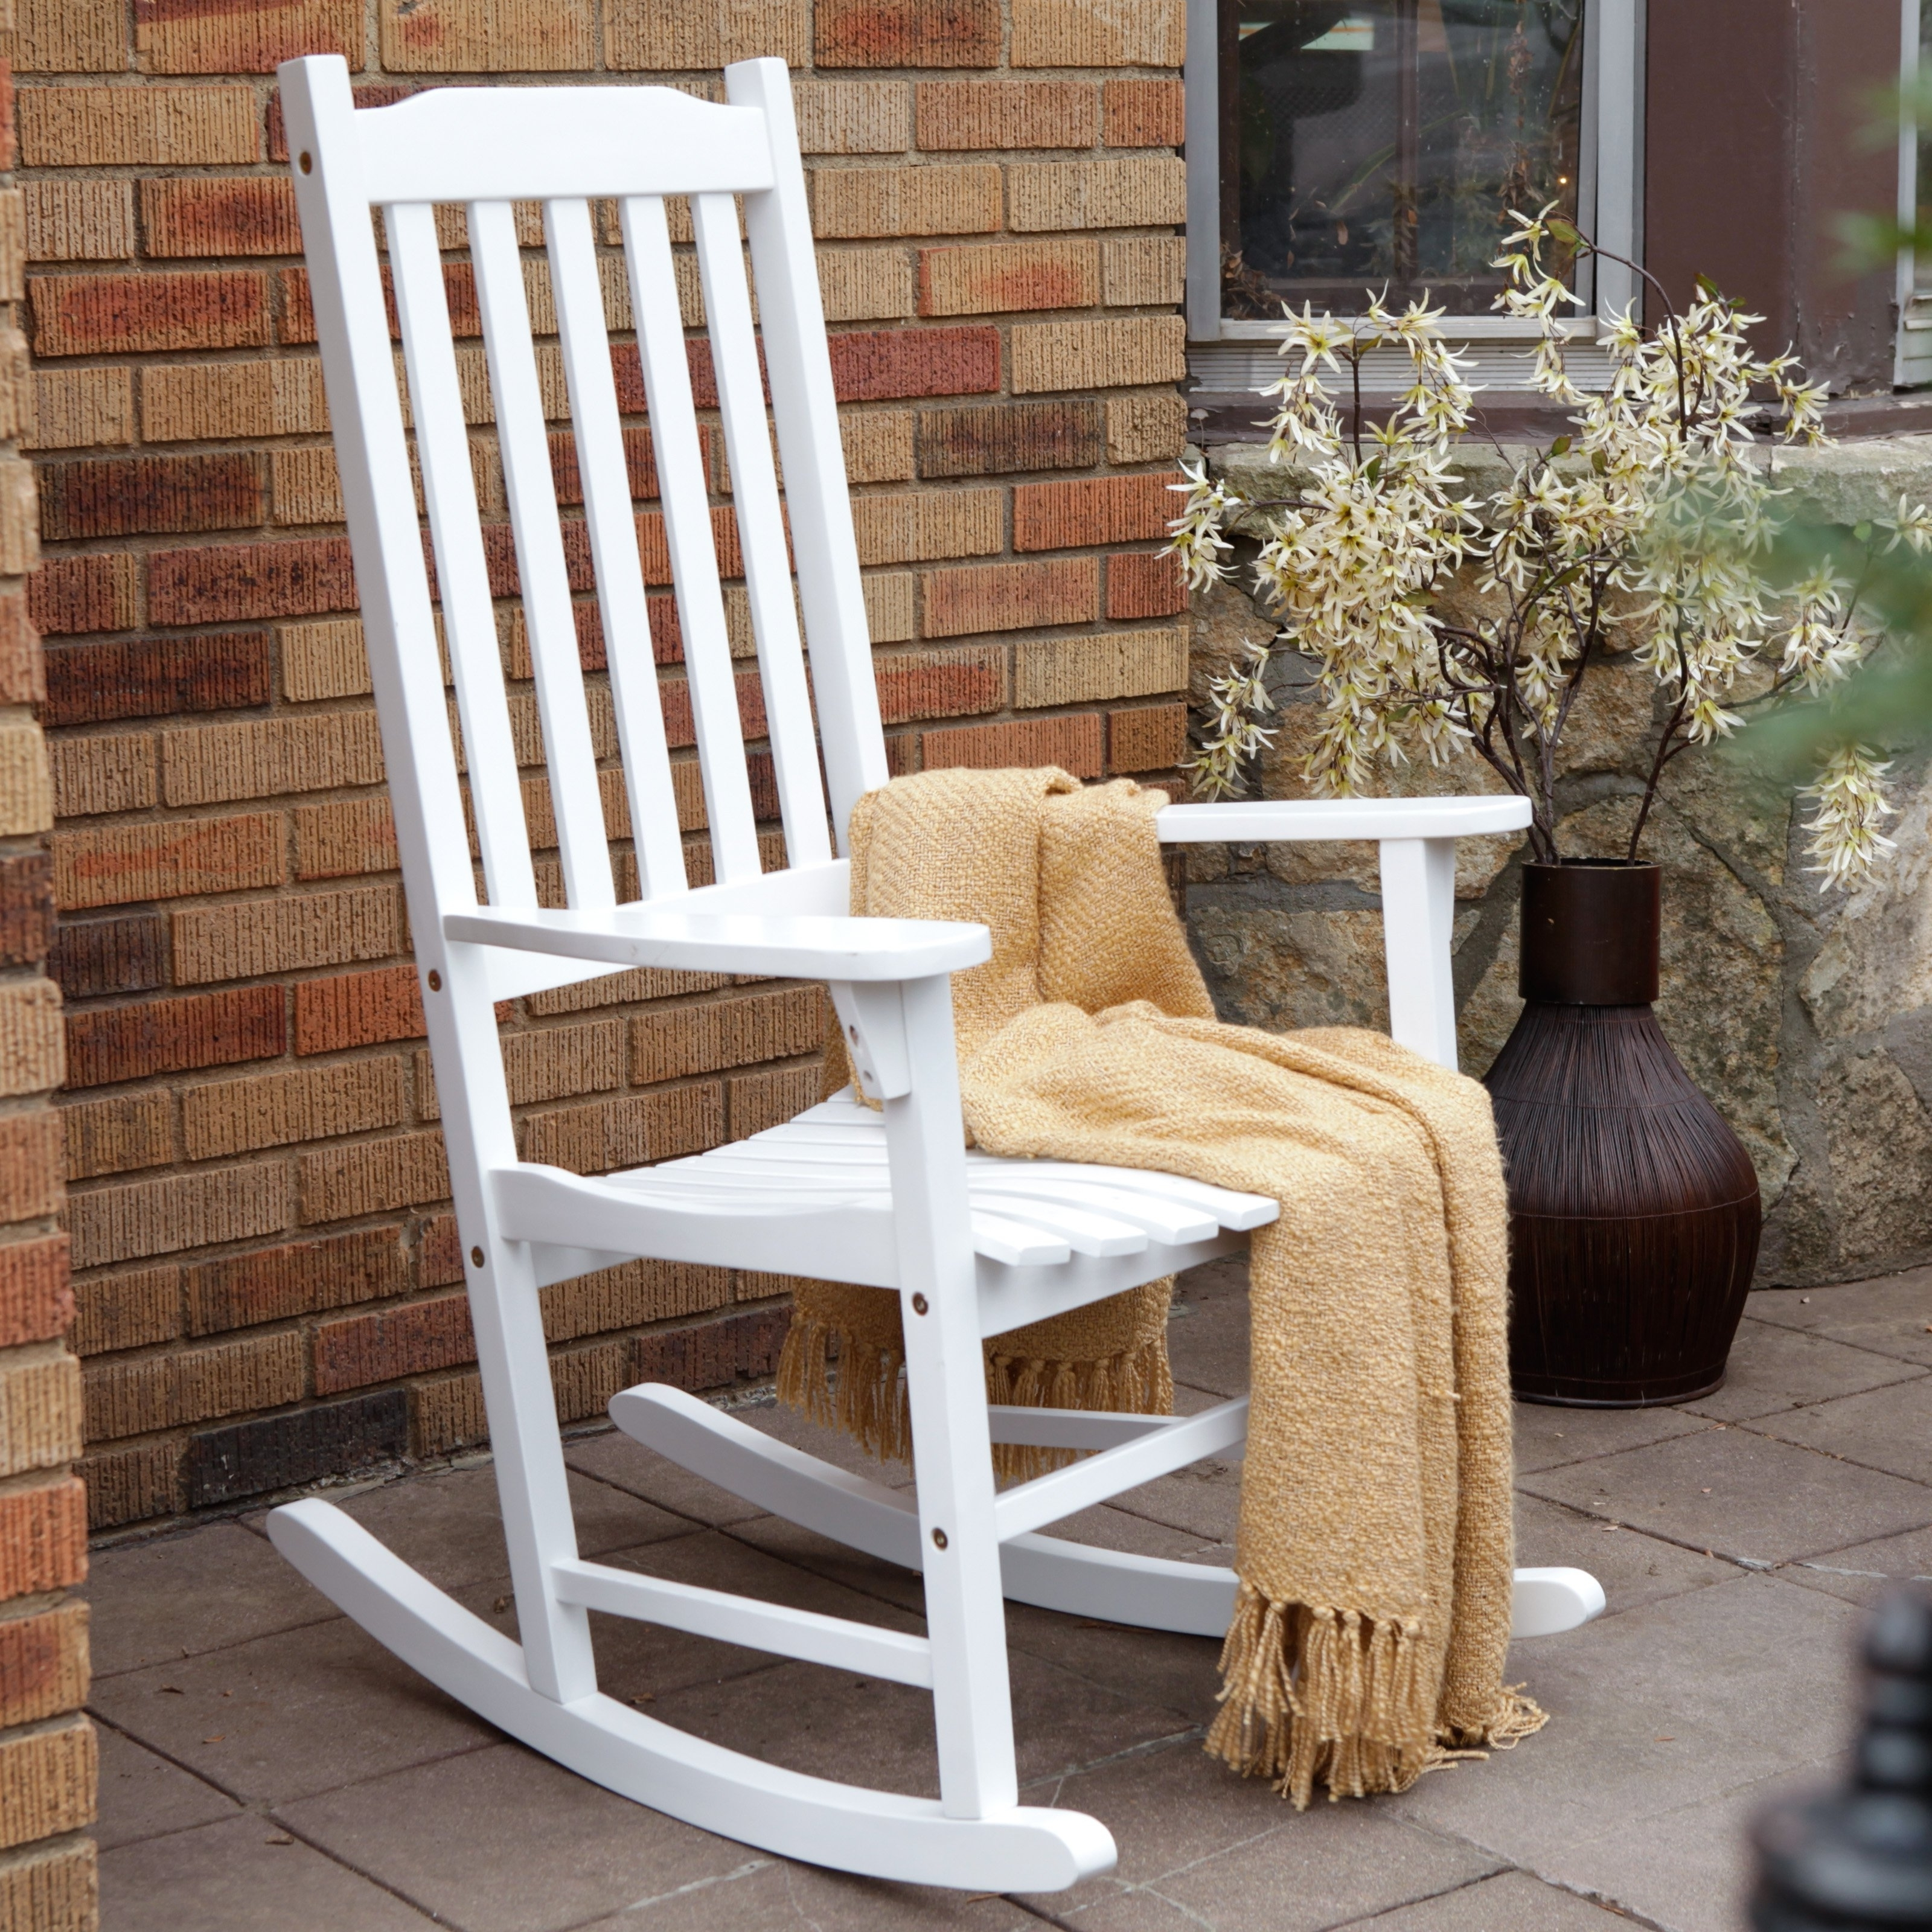 Popular Coral Coast Indooroutdoor Mission Slat Rocking Chair White With Regard To Small Patio Rocking Chairs (View 4 of 15)